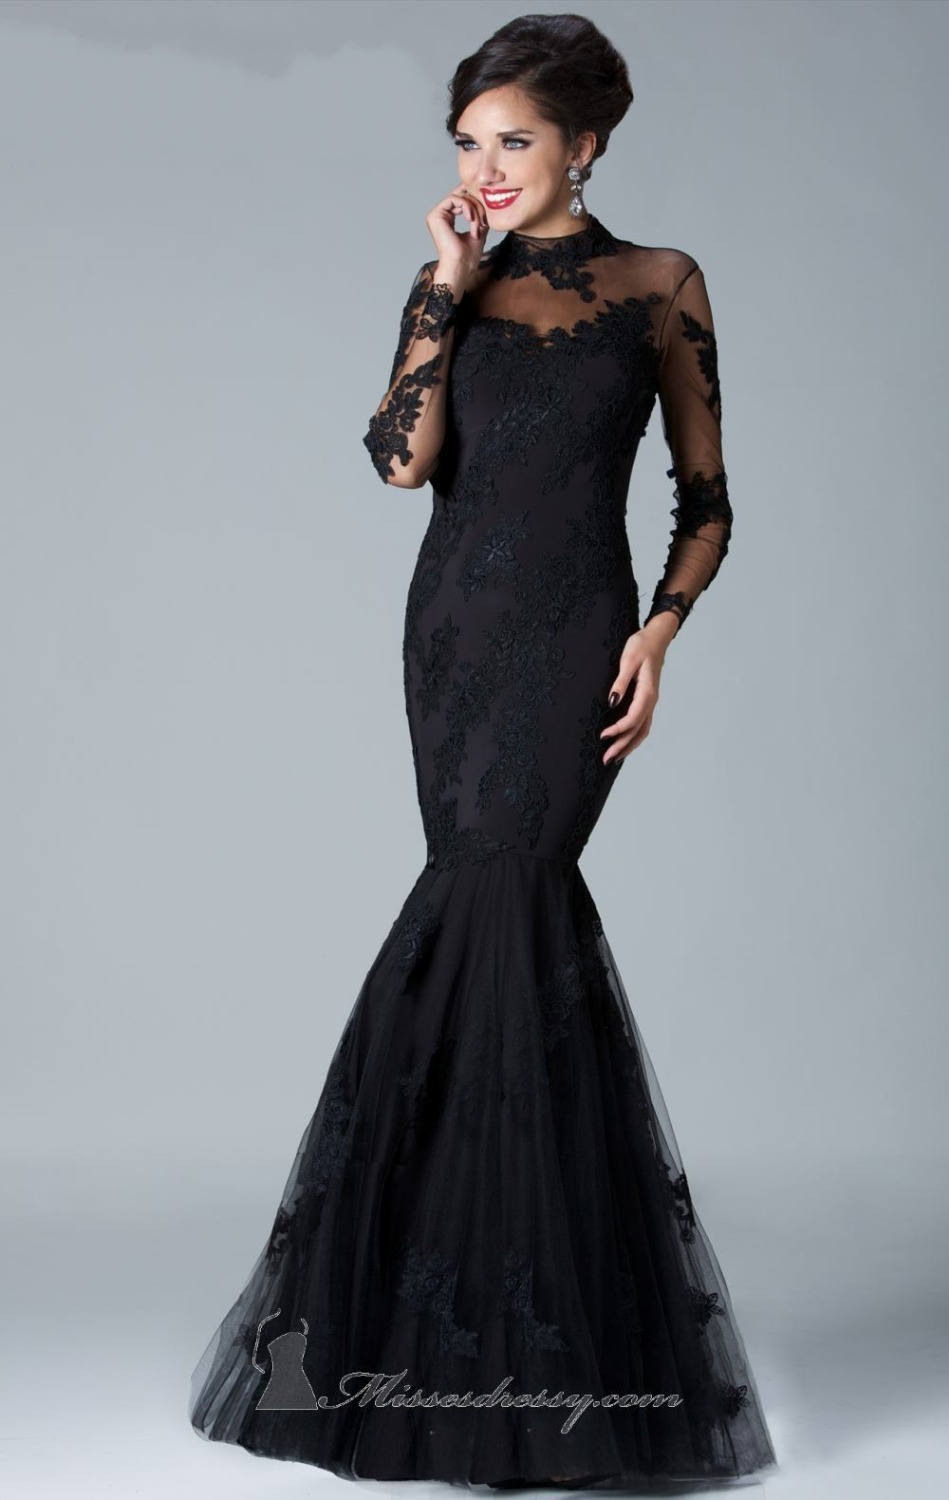 Black Lace Plus Size Wedding Dresses | Dress images